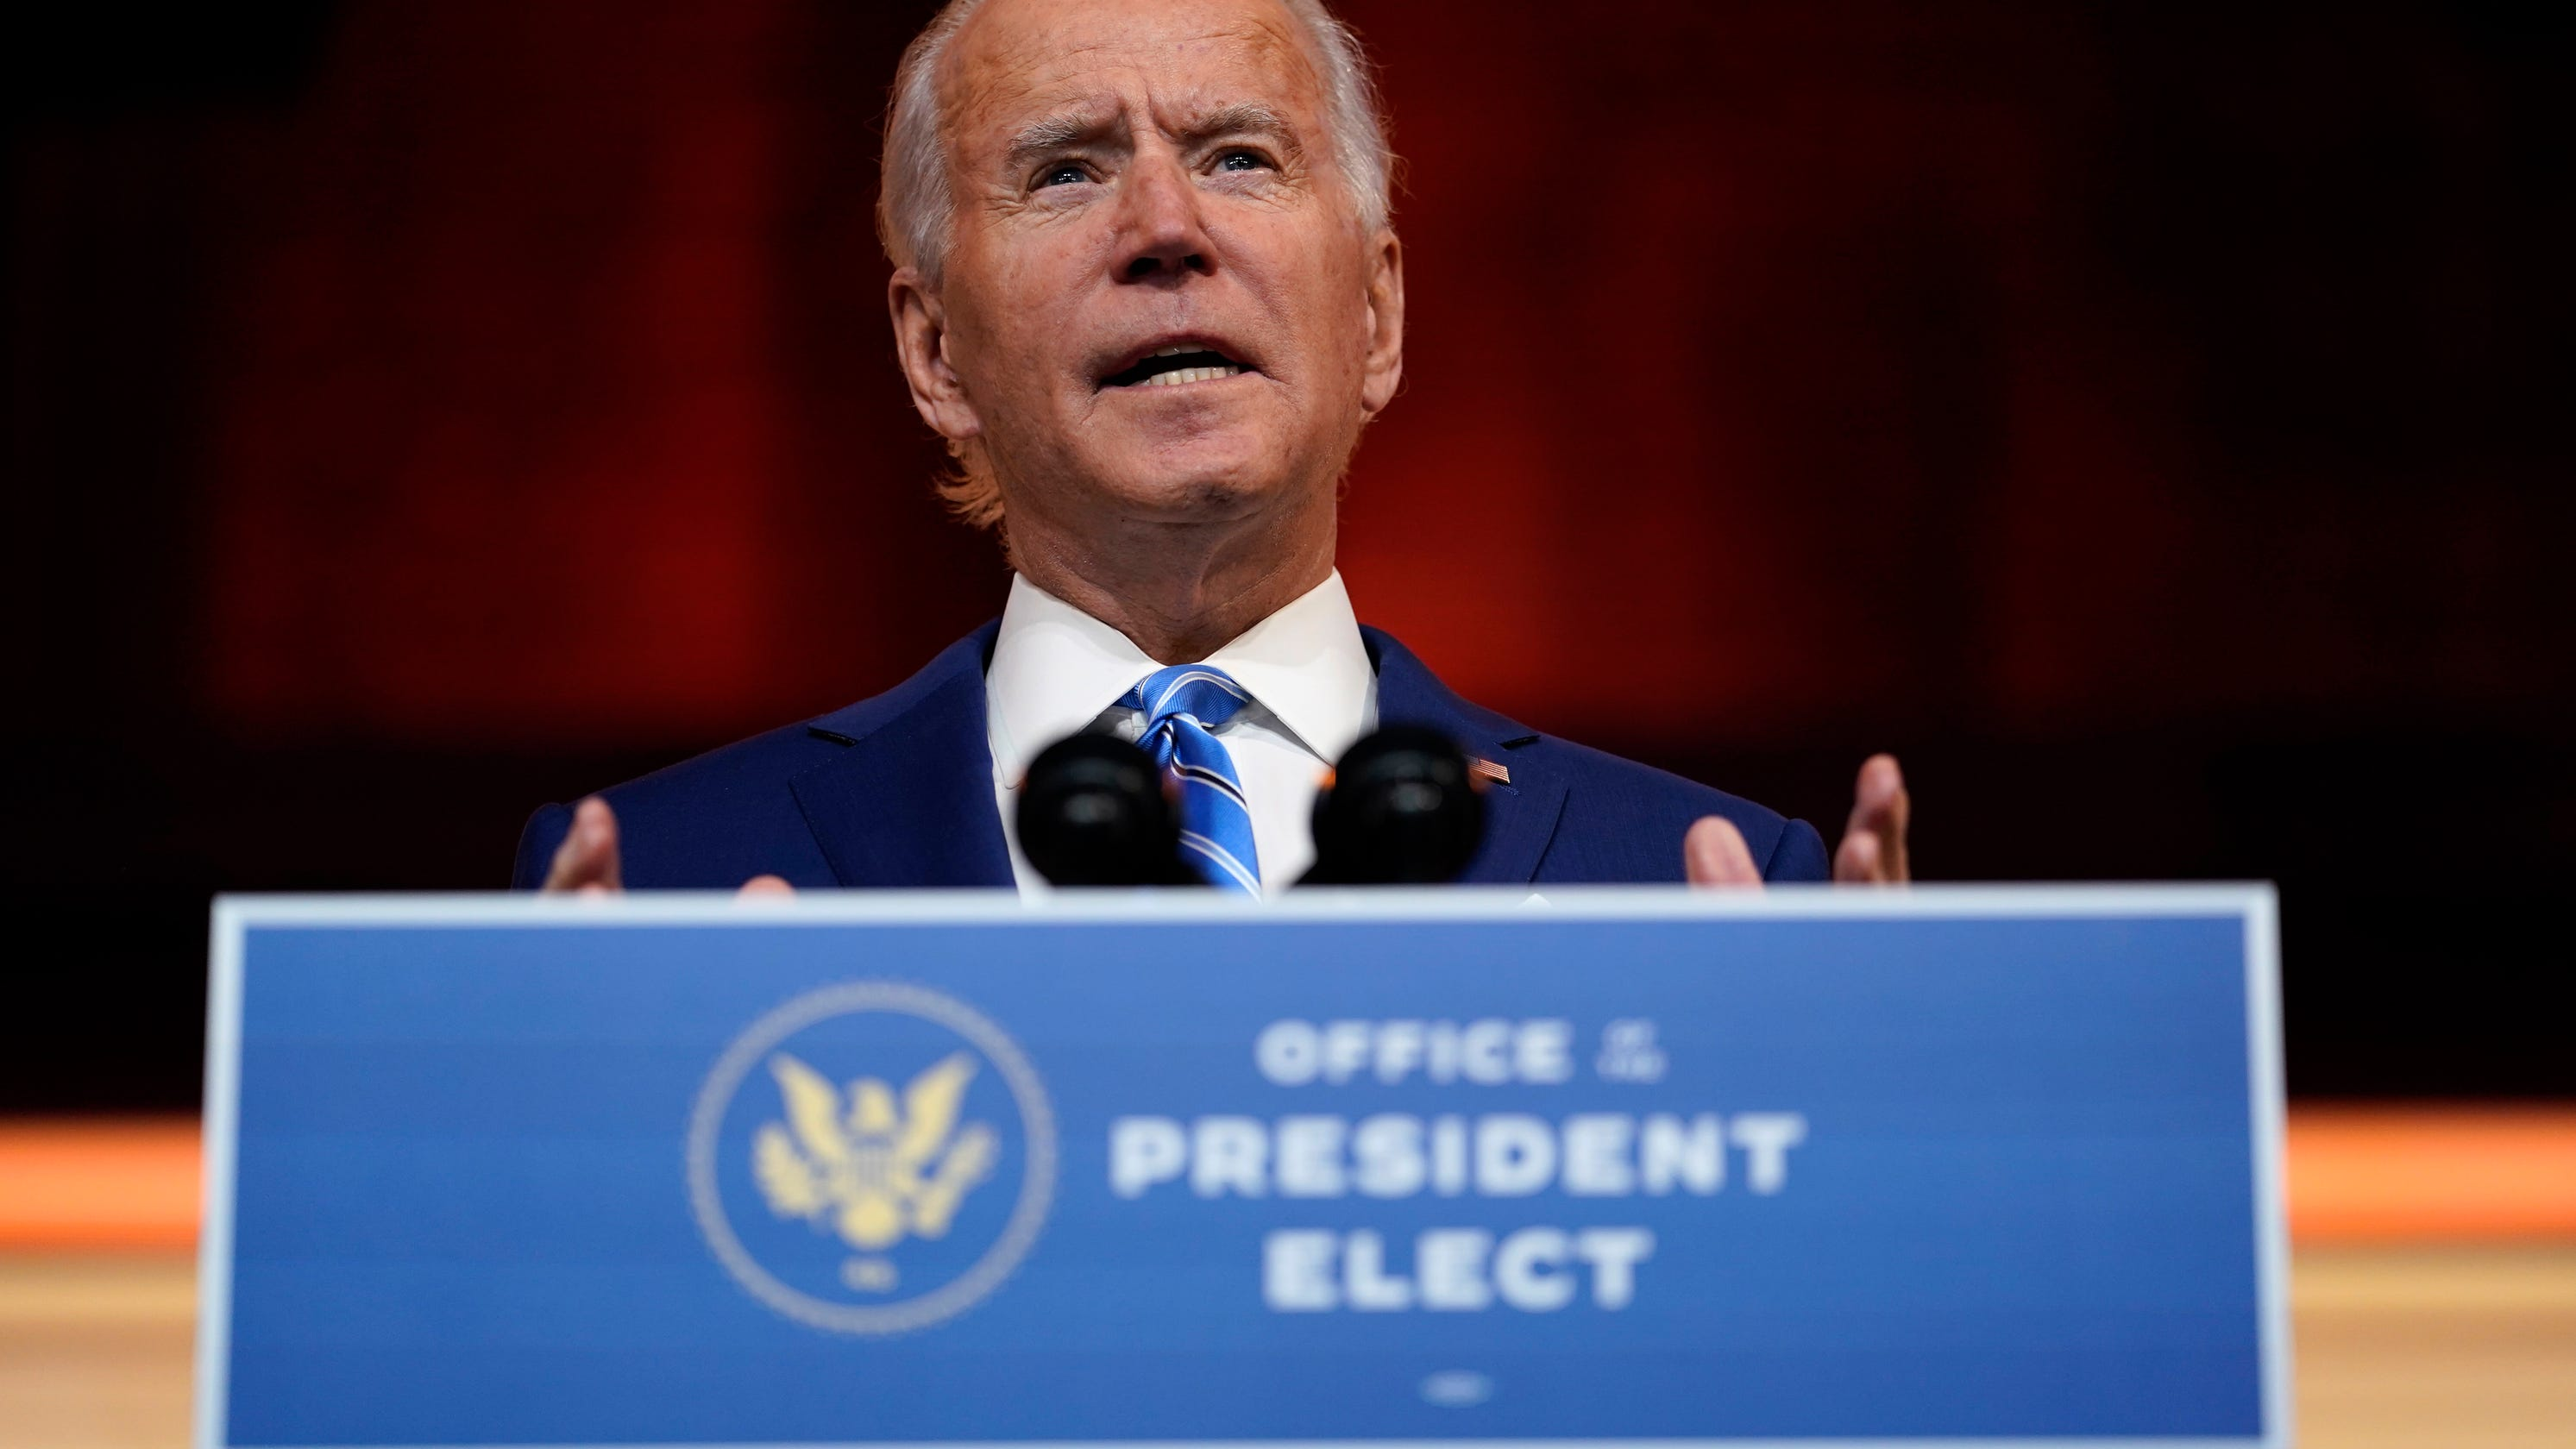 Post-election Gallup poll: Biden favorability rises to 55% while Trump's dips to 42% – USA TODAY